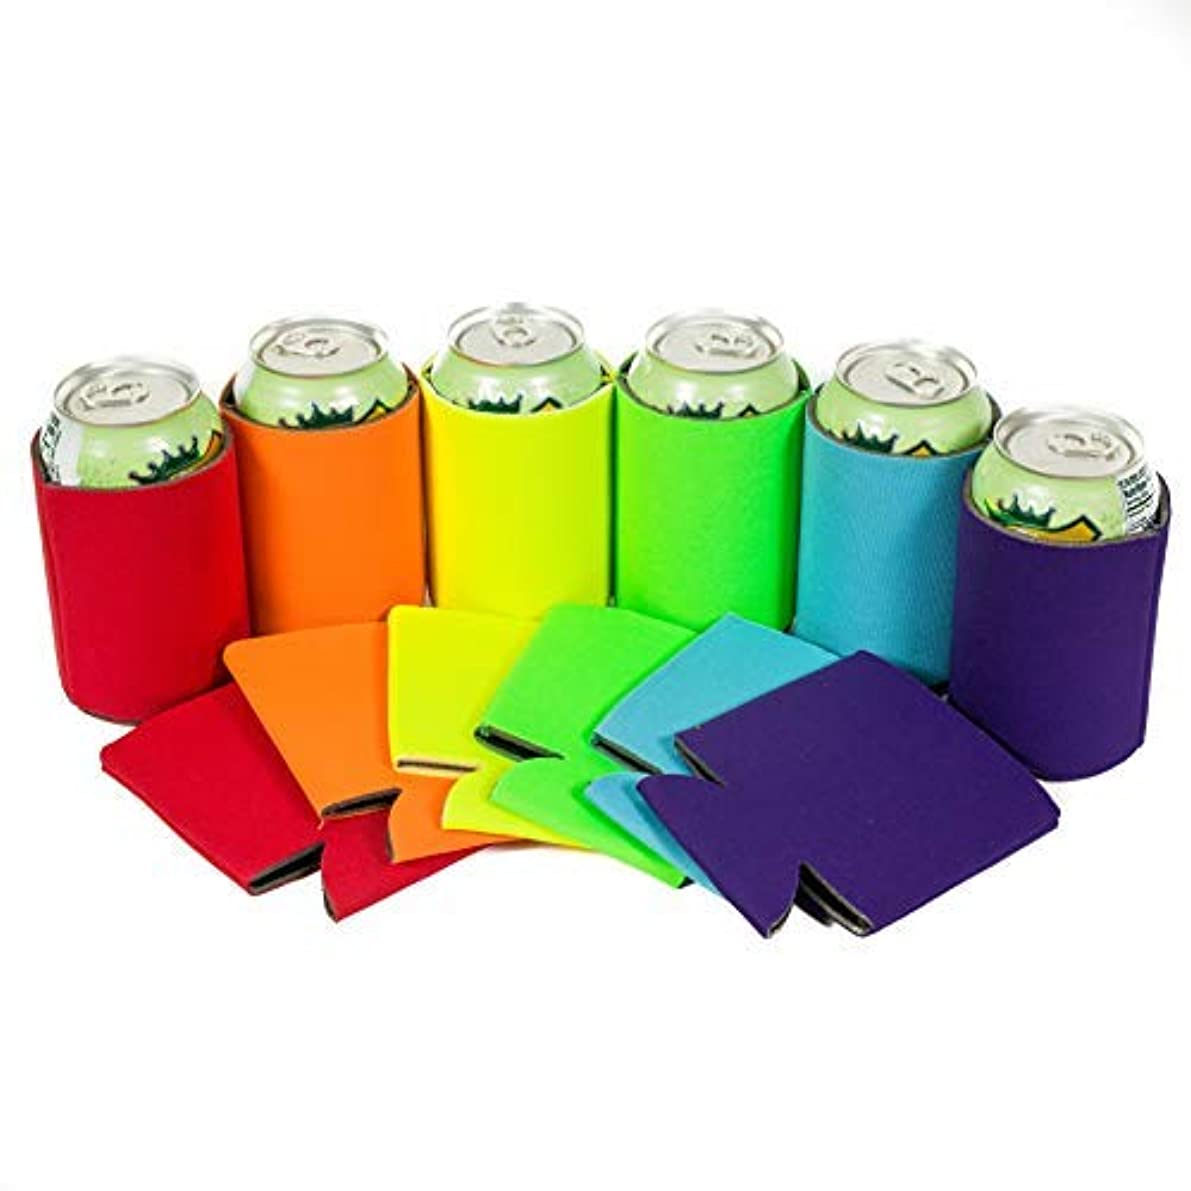 QualityPerfection 12 Multi Beer Blank Can Coolers Sleeves,Soft Drink,Economy Bulk,Collapsible Insulator,Perfect 4 BBQ,Weddings,Parties(12,Purple,Turquoise,Green Lime,Yellow,Orange,red)